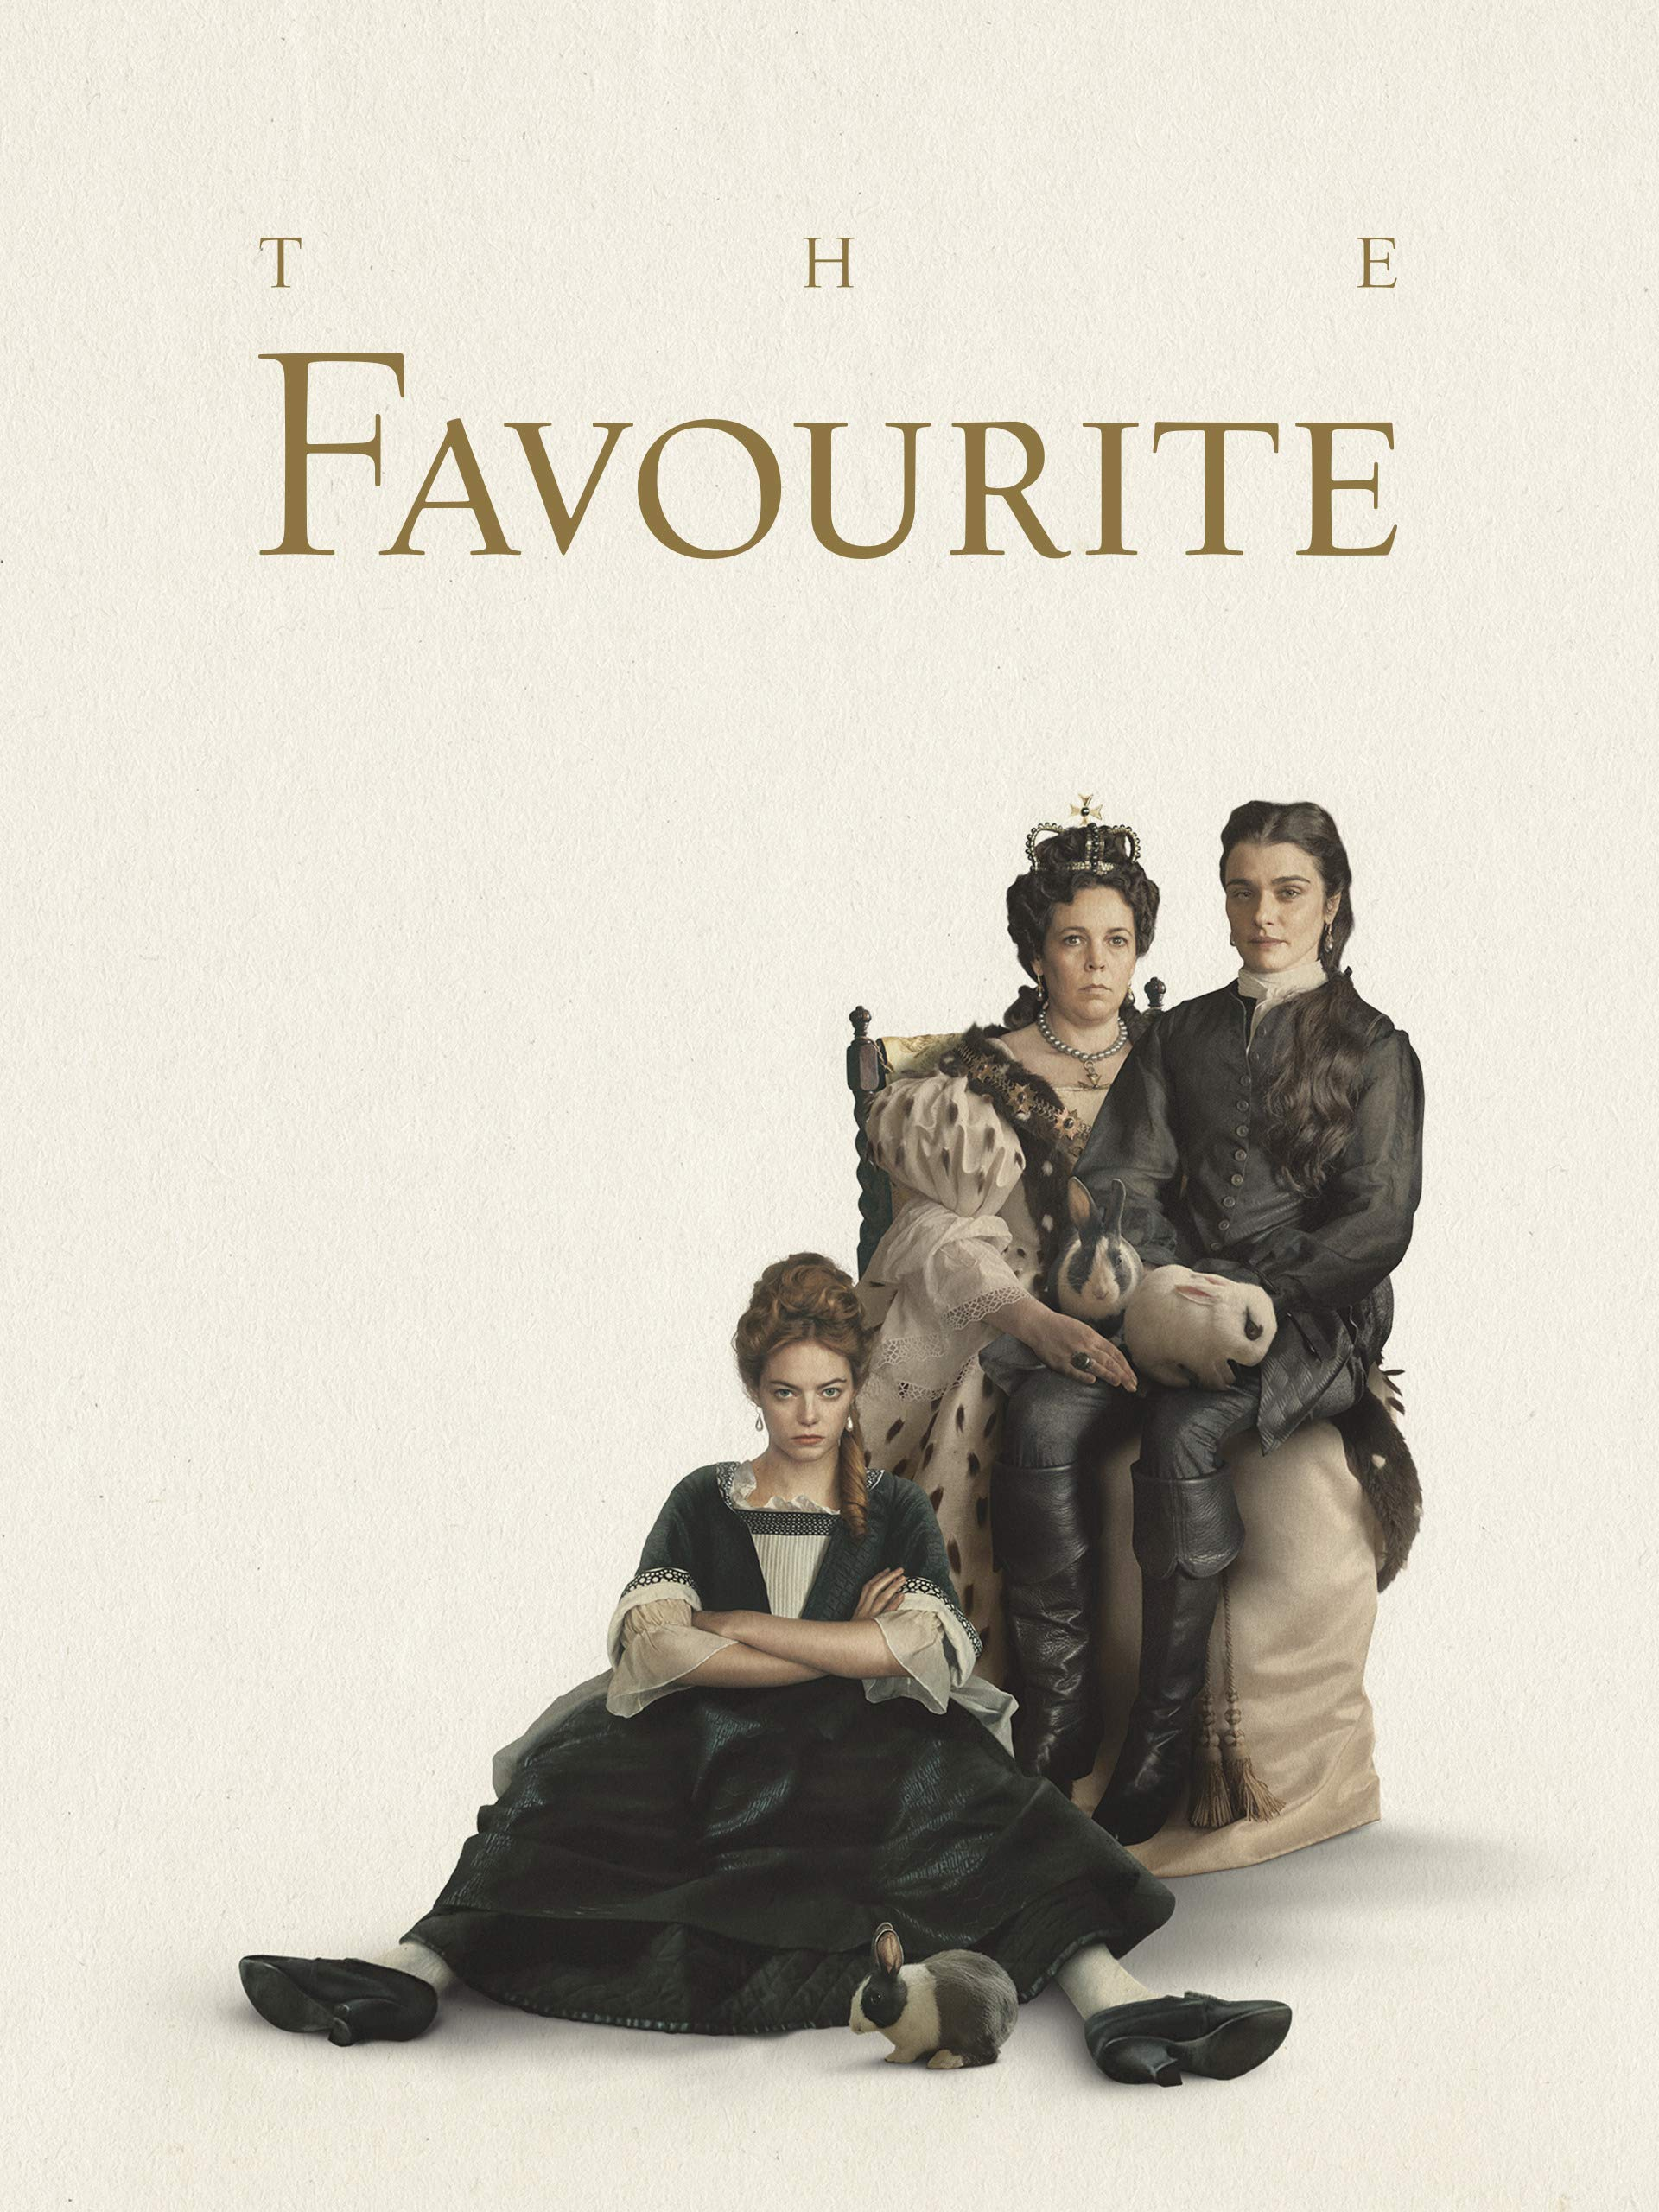 The Favourite [15]